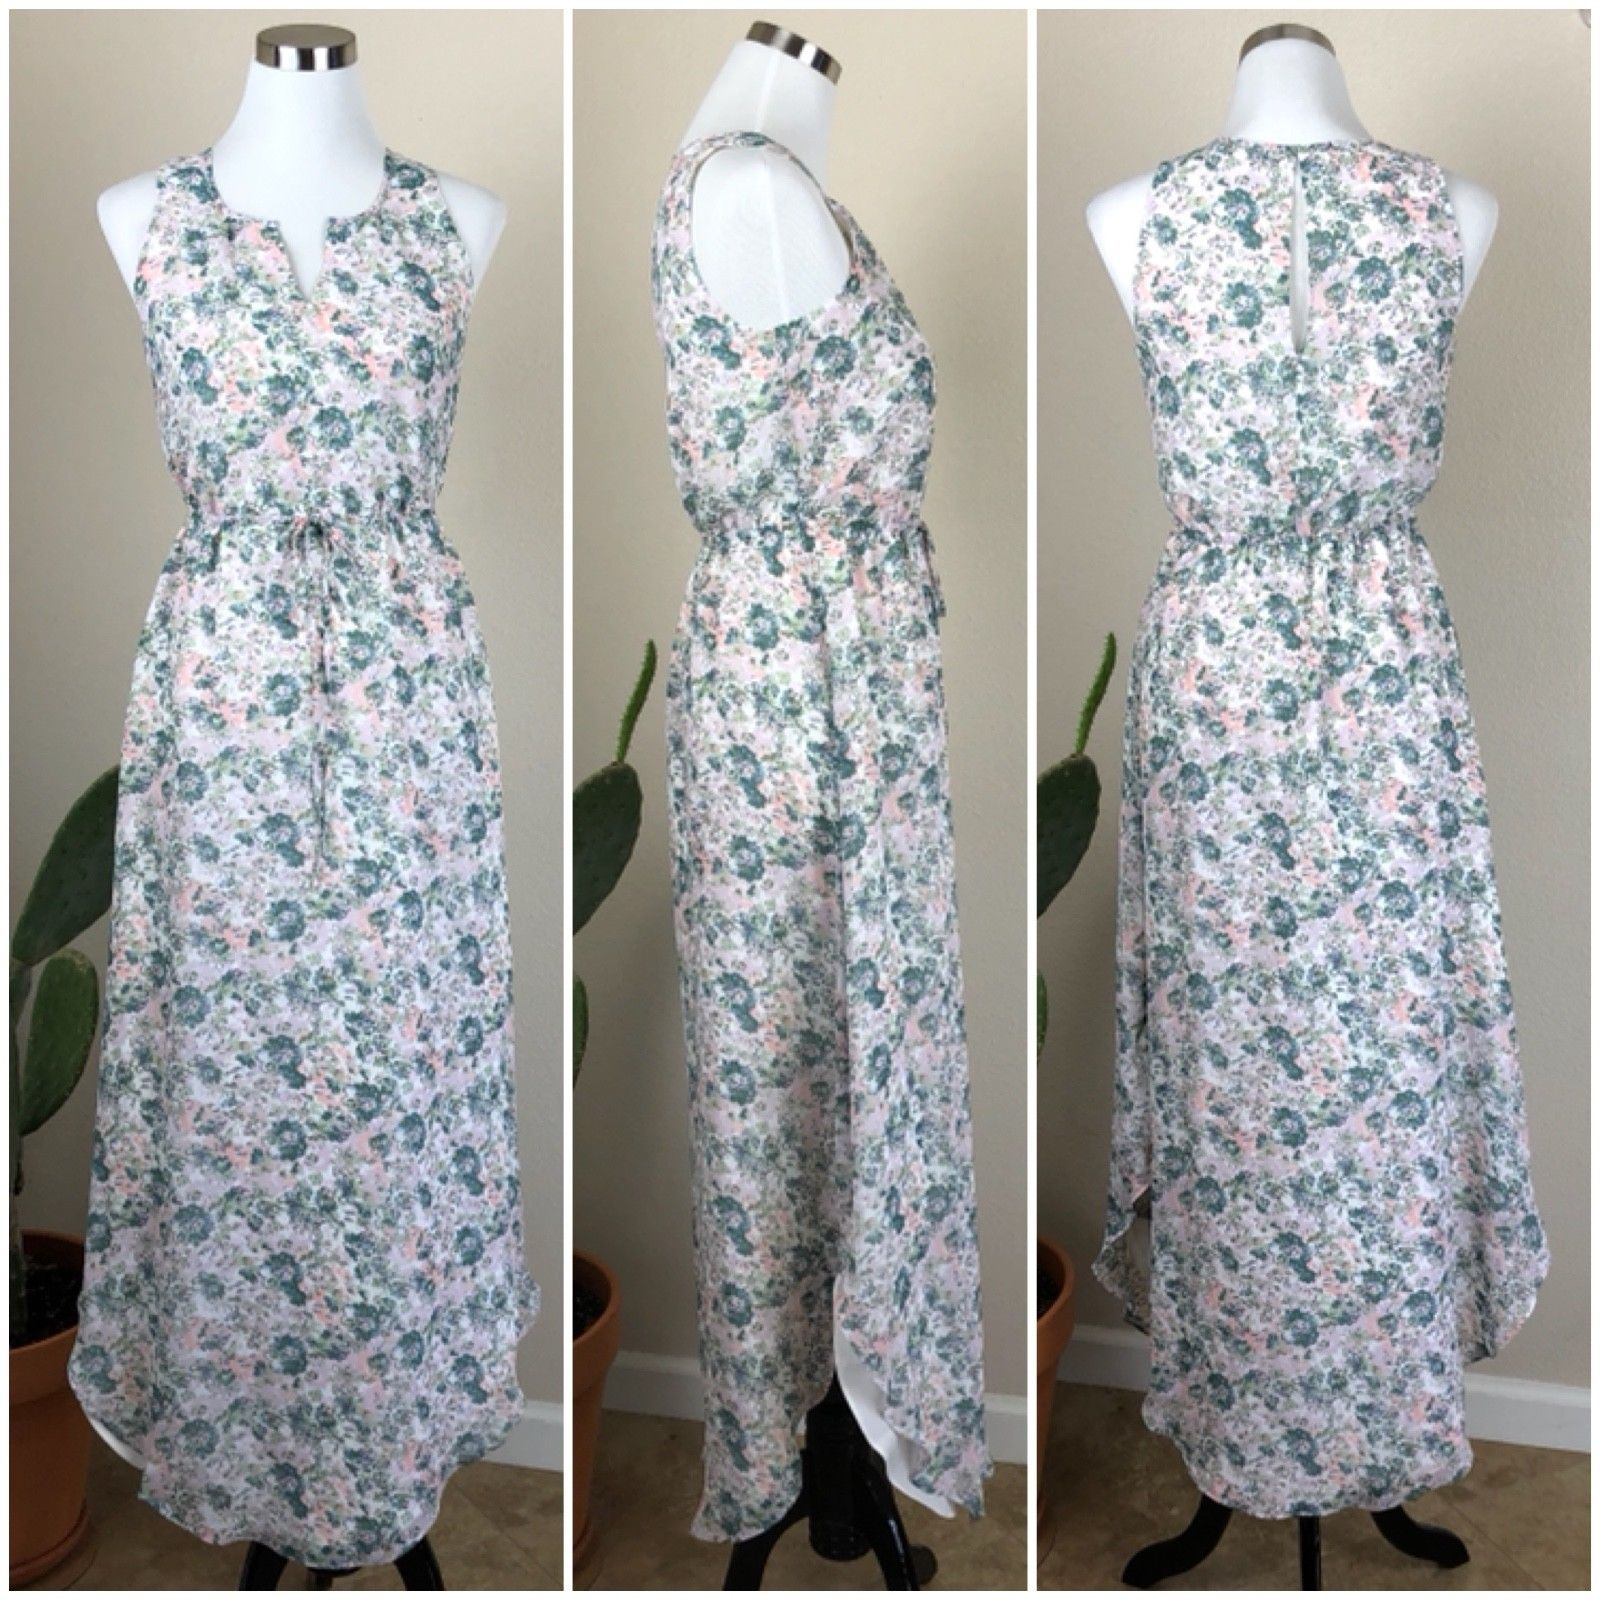 e3778bfe9f9 LC LAUREN CONRAD Womens 2 Small Pastel Floral Blythe Maxi Sleeveless Party  Dress